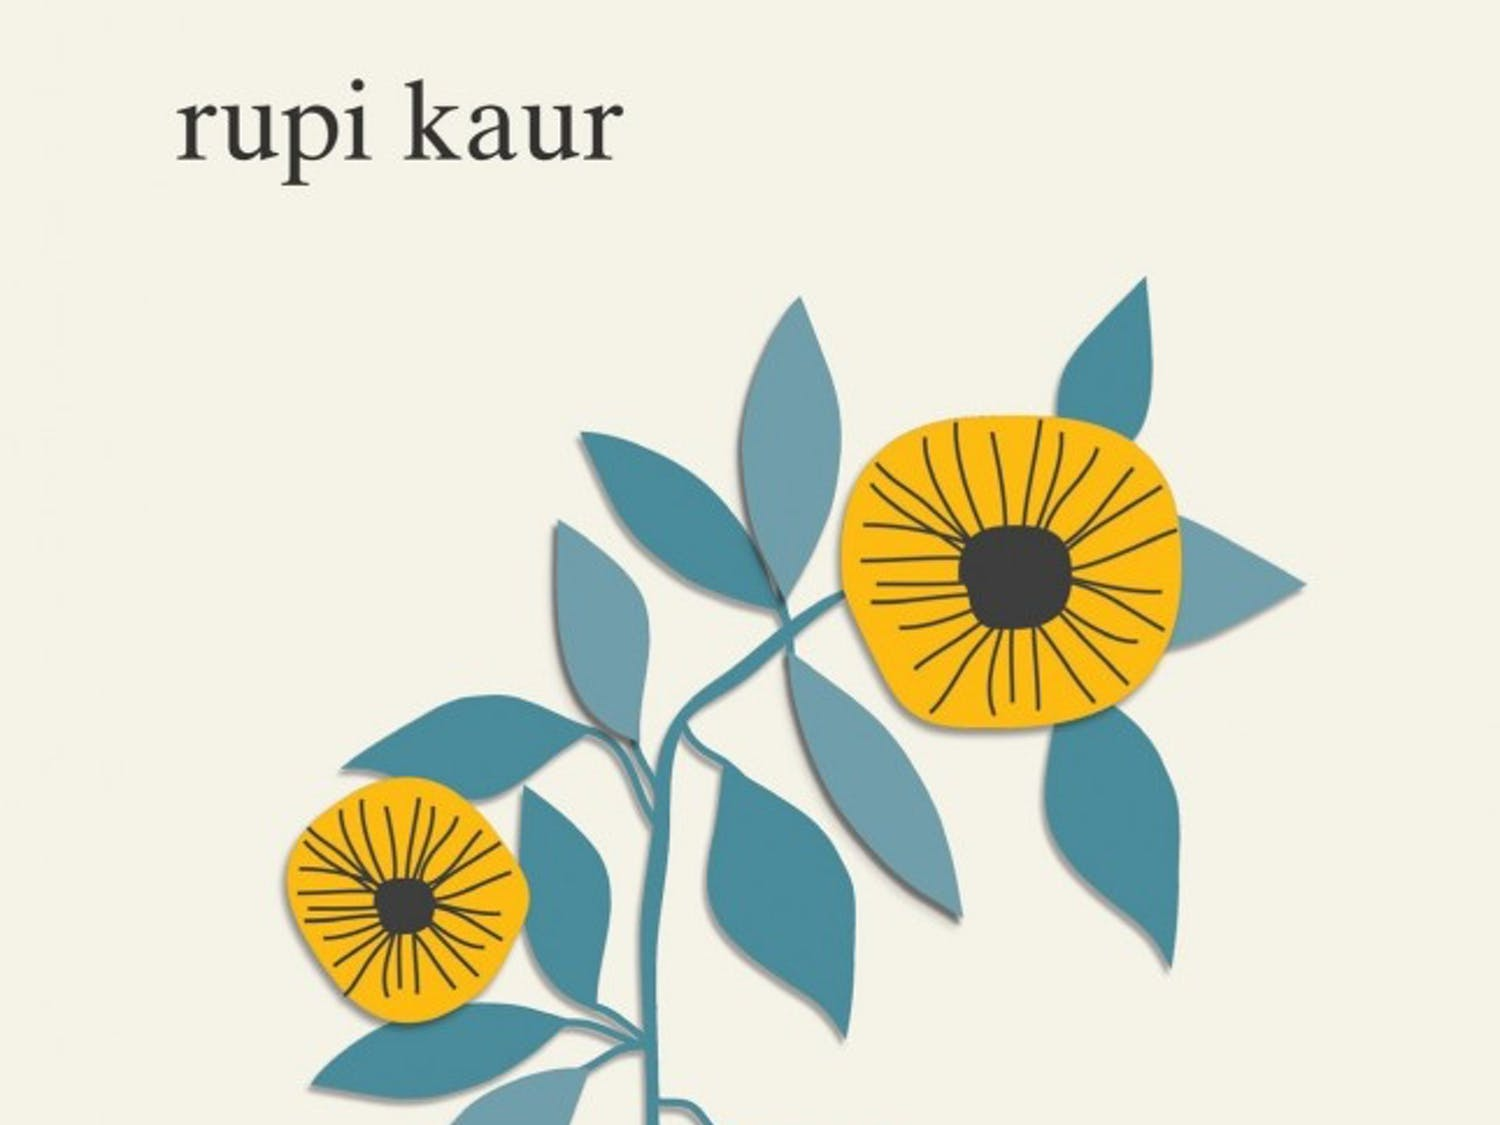 Kaur's collection of poetry has the capacity to mend and heal broken hearts.